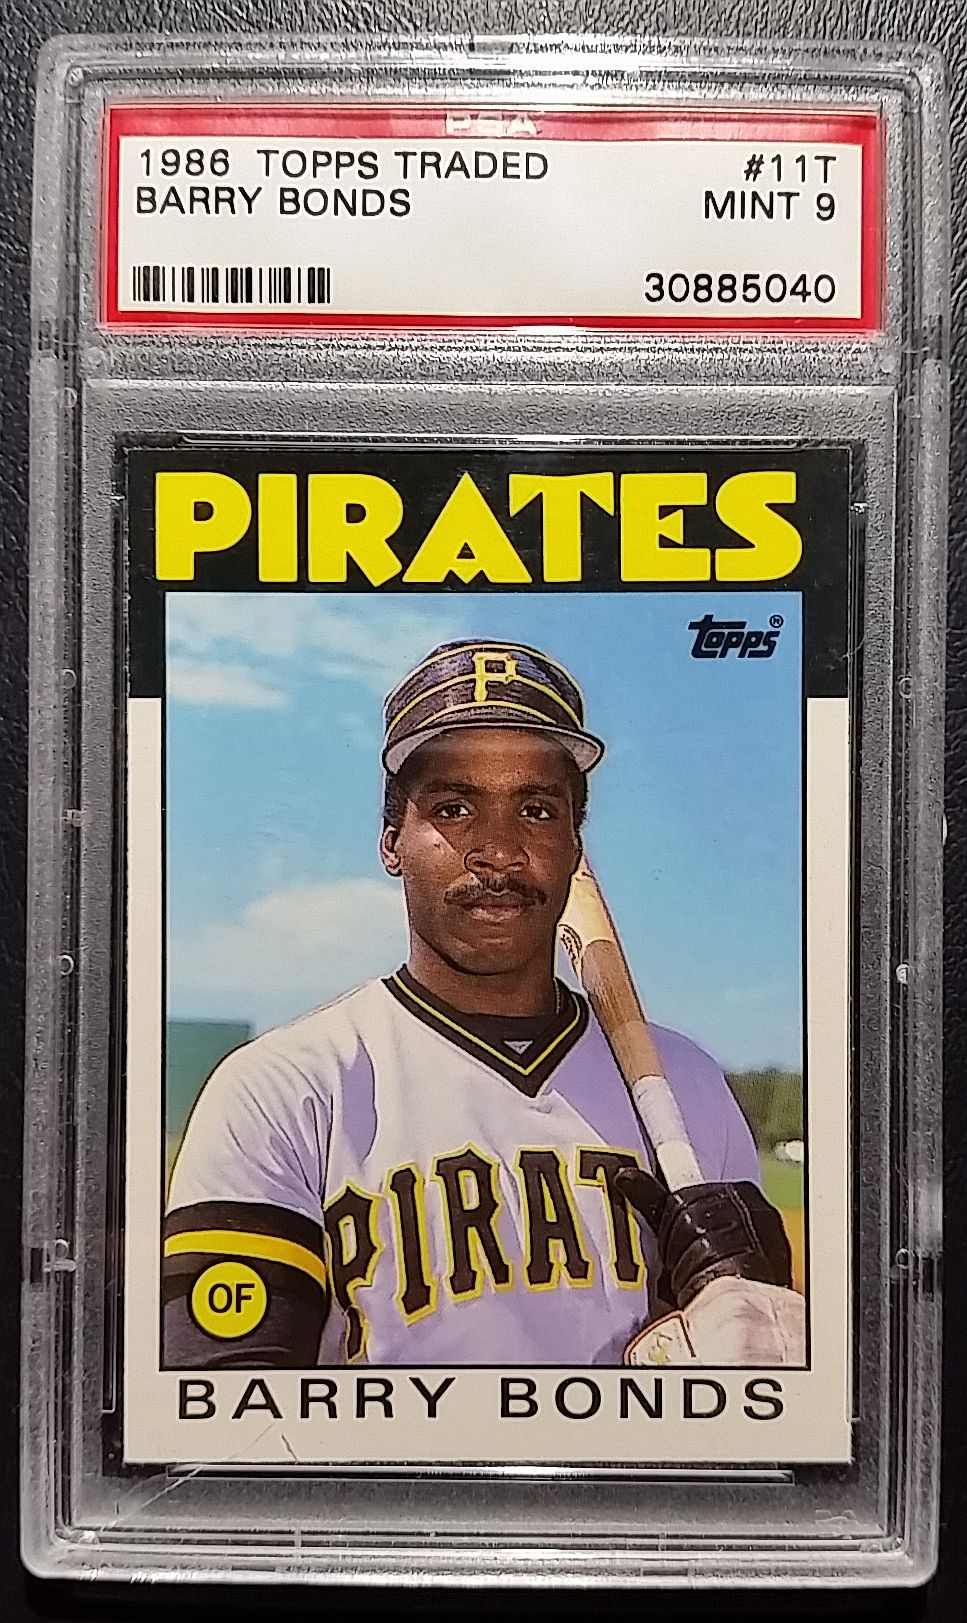 1986 Topps Traded Baseball Barry Bonds Rookie Card graded Mint 9 by PSA